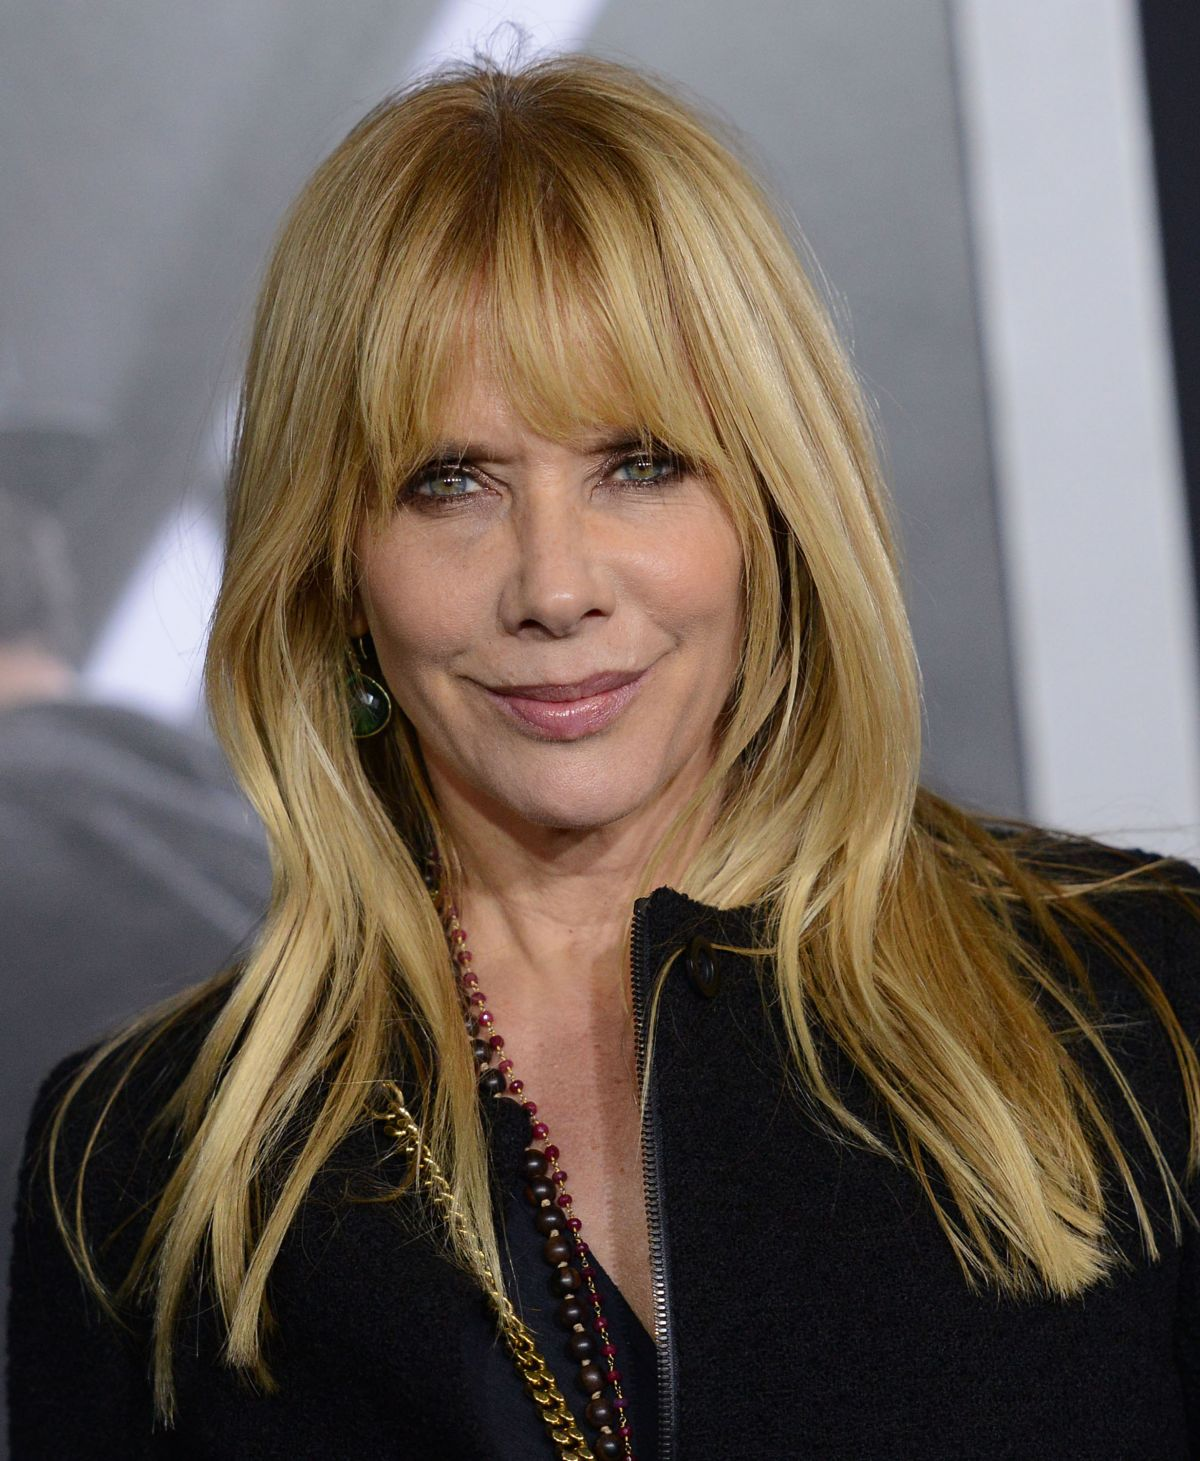 ROSANNA ARQUETTE at Creed Premiere in Westwood 11/19/2015 ... Emma Watson Imdb